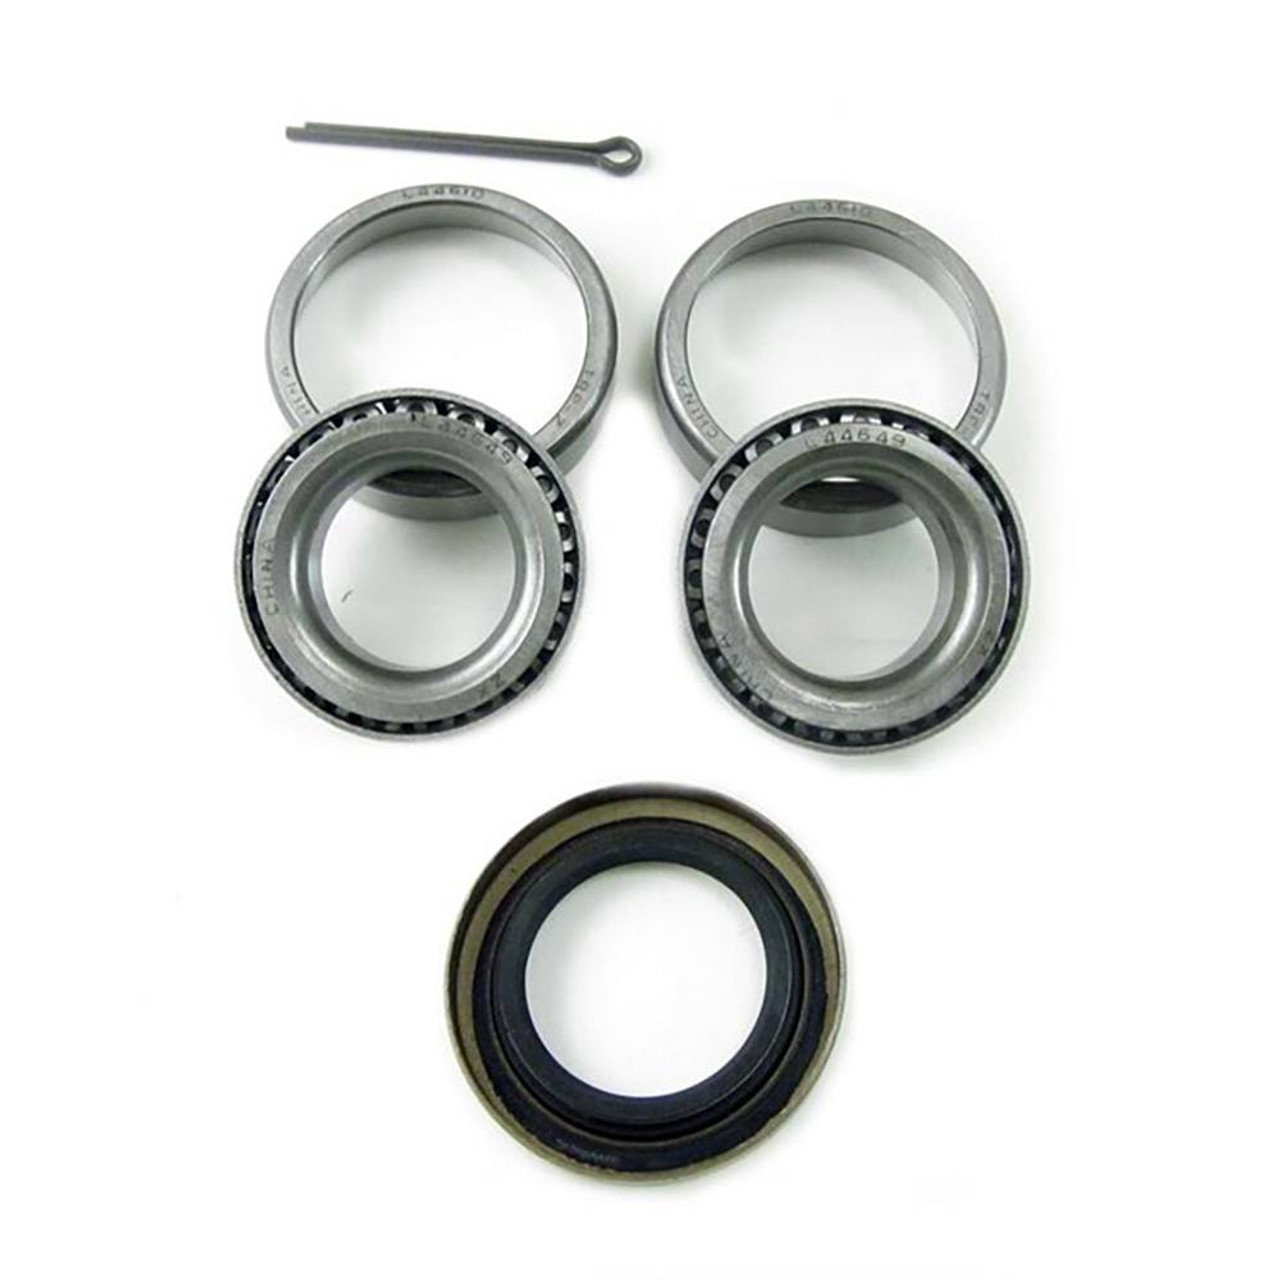 Bearing Kit: L44649 Bearings with L44610 Races - Seal and Pins included